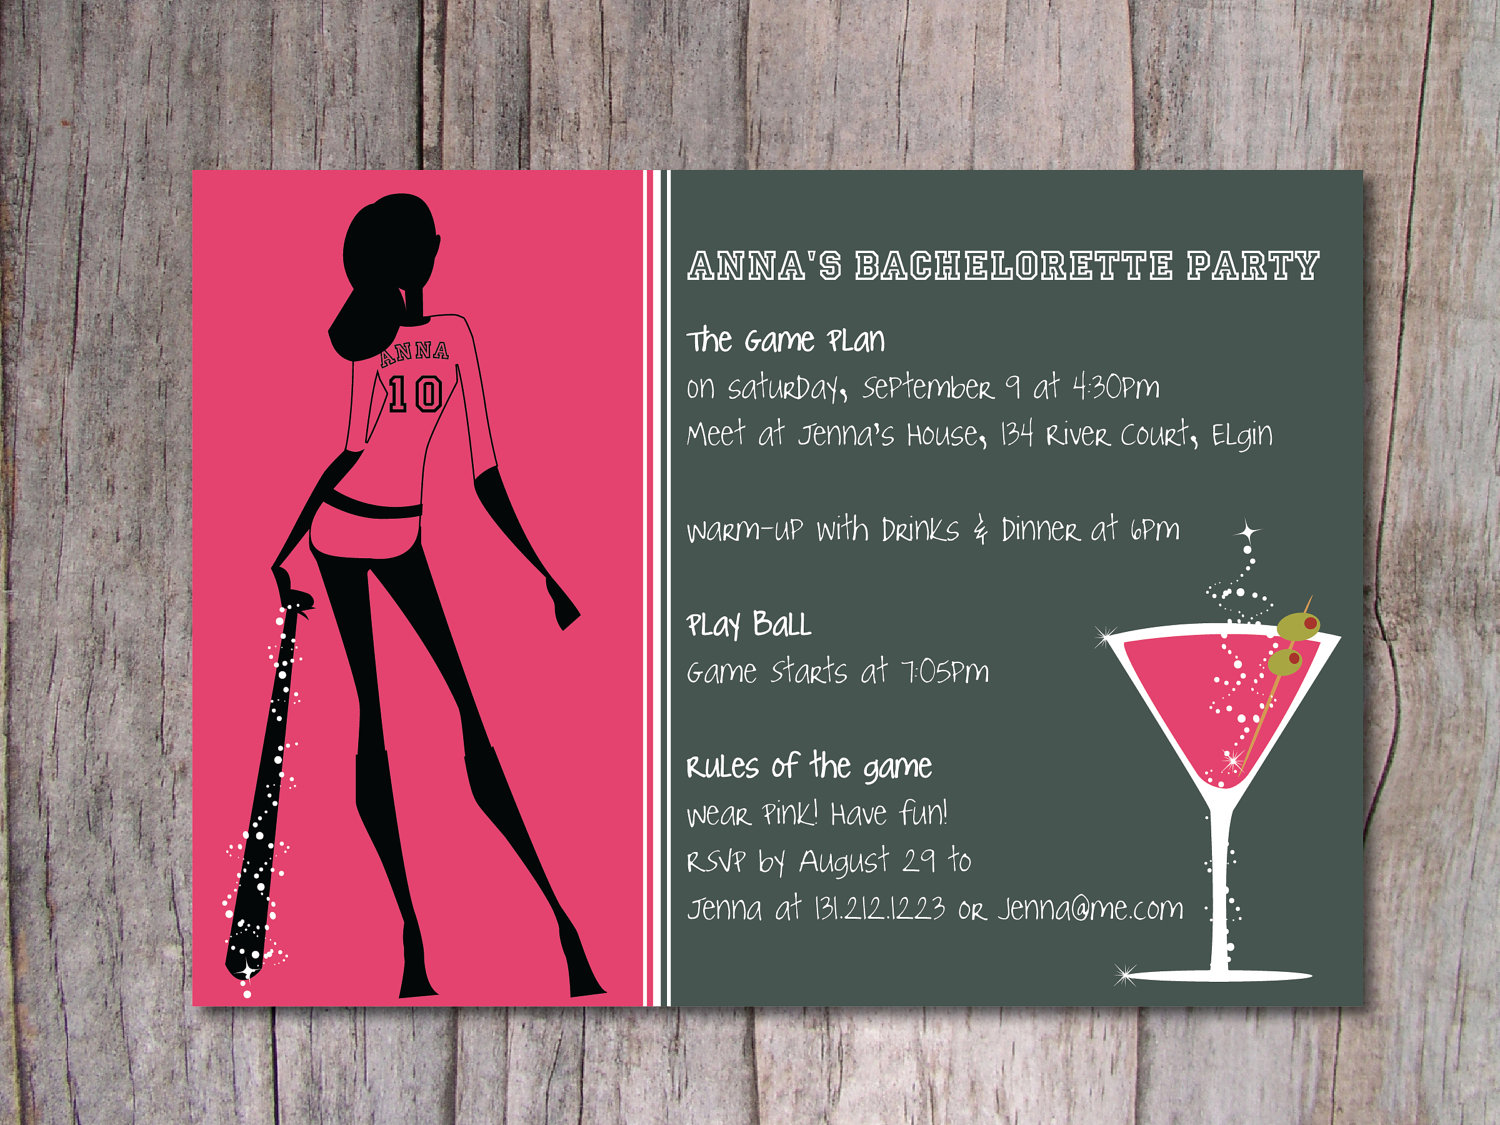 Magnificent Bachelorette Party Invitations Etsy Gallery - Invitation ...